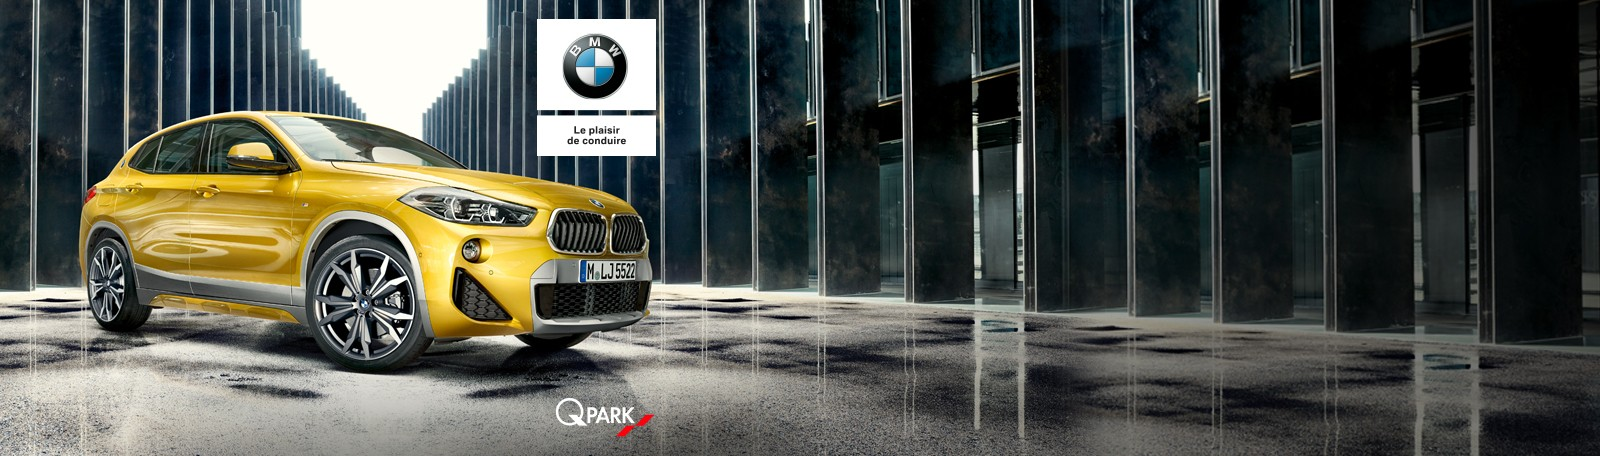 Partnership BMW - Q-Park 2018